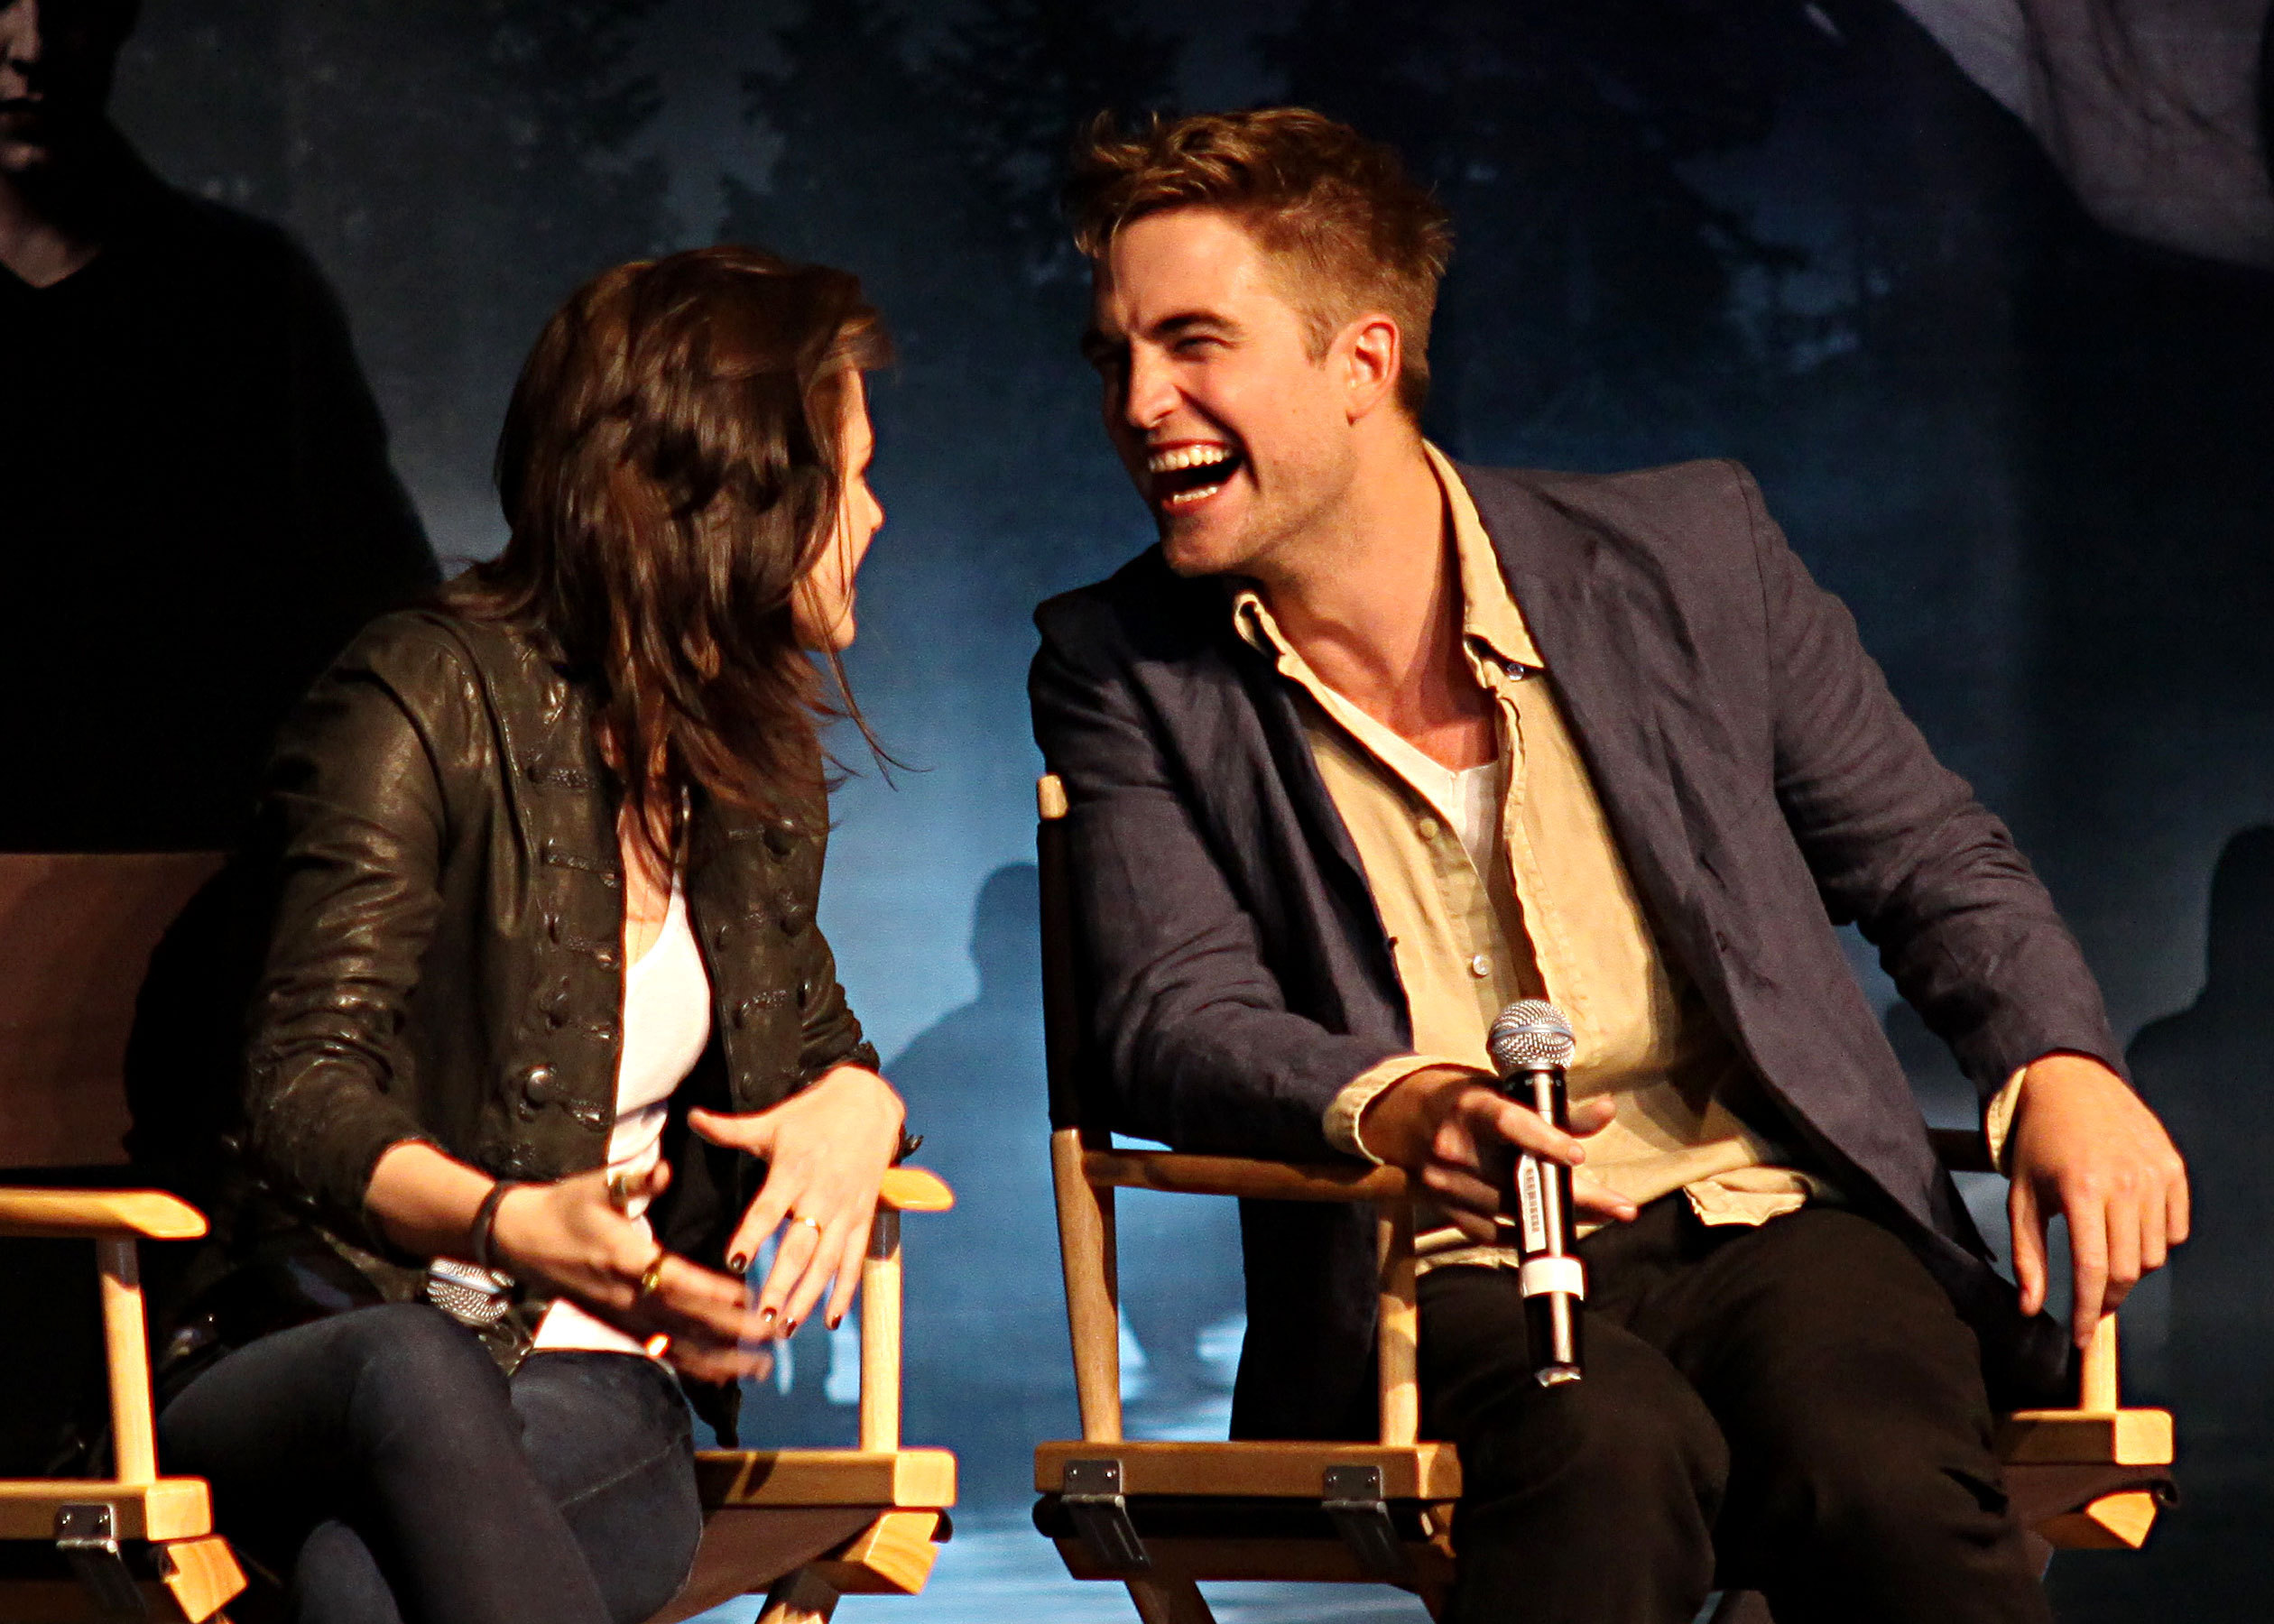 Robert Pattinson, Kristen Stewart Talk 'Eclipse' - Robert ...